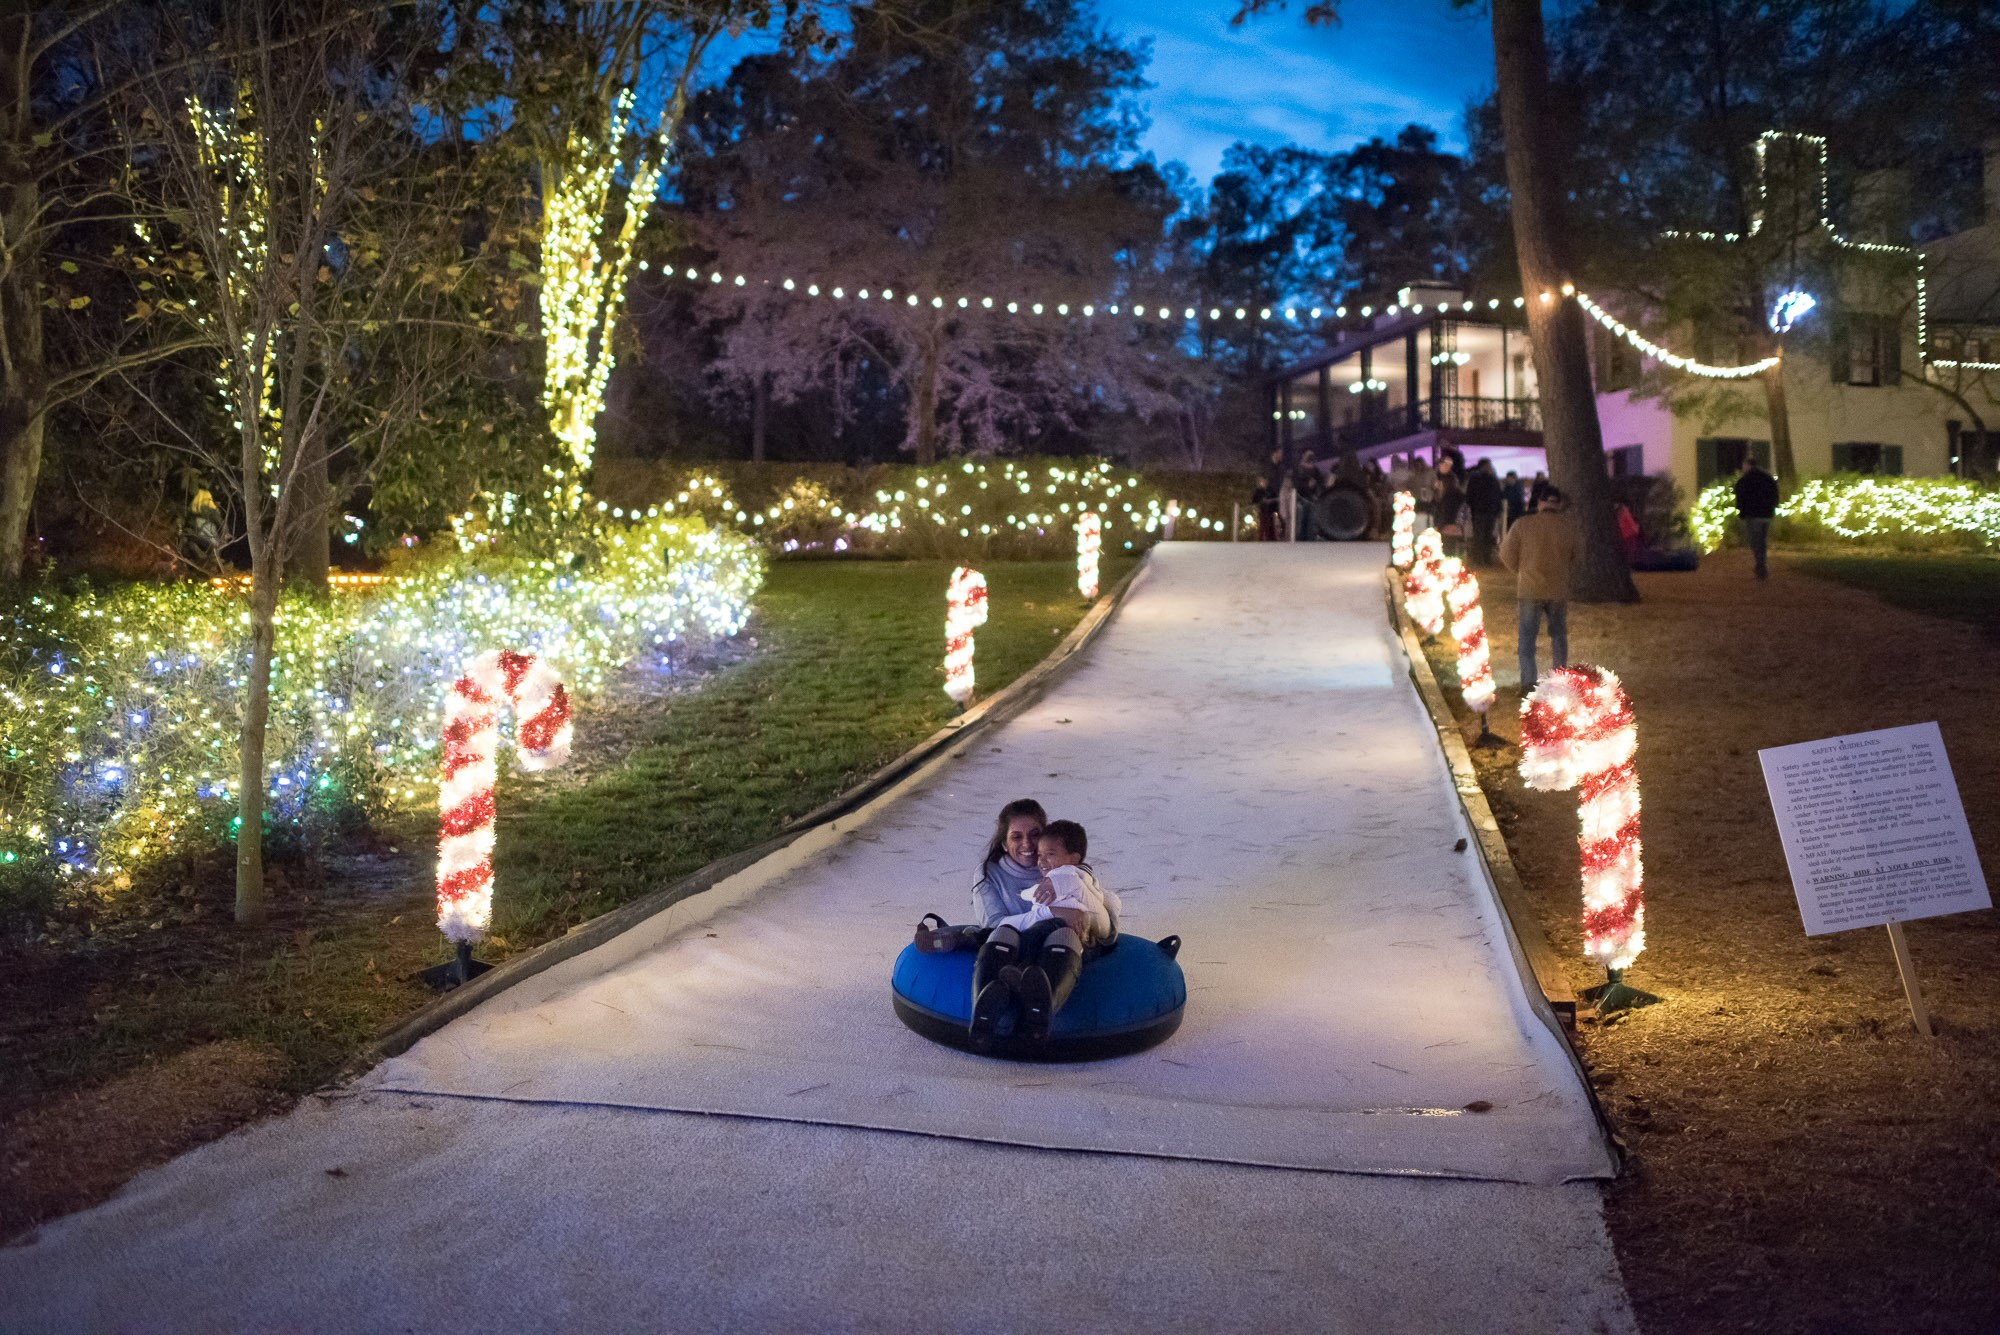 Christmas On The Bayou 2019 Christmas Village at Bayou Bend | The Museum of Fine Arts, Houston